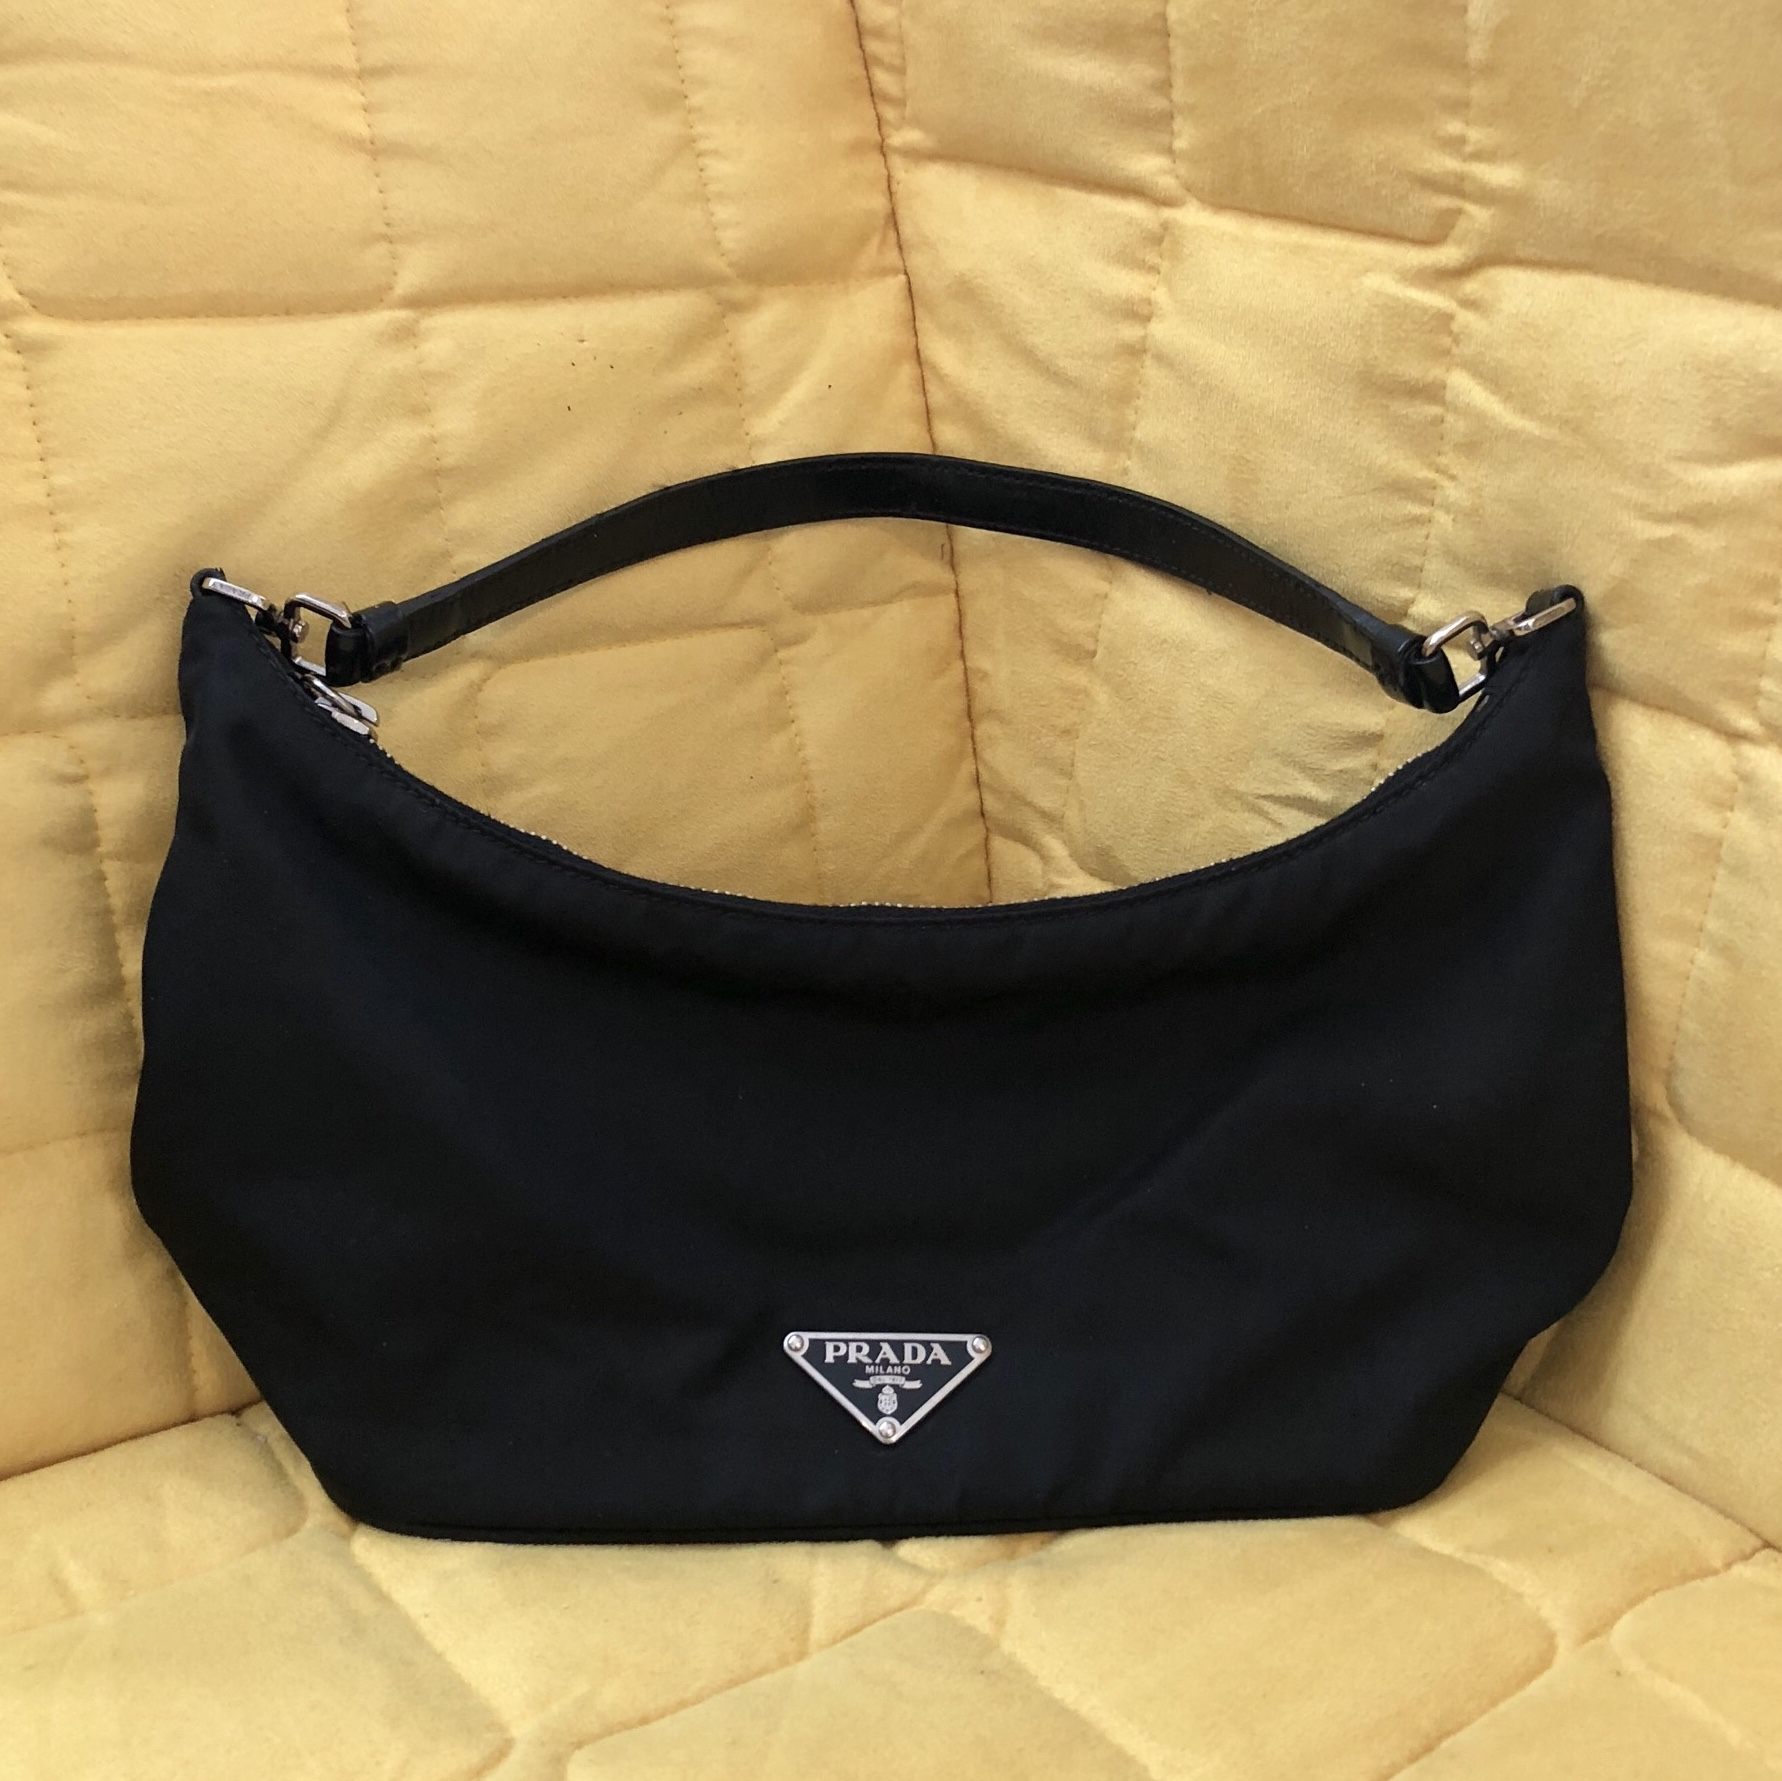 e9ed7a29db3c ... cheap vintage prada nylon shoulder bag authentic prada small and depop  77ead e9faa